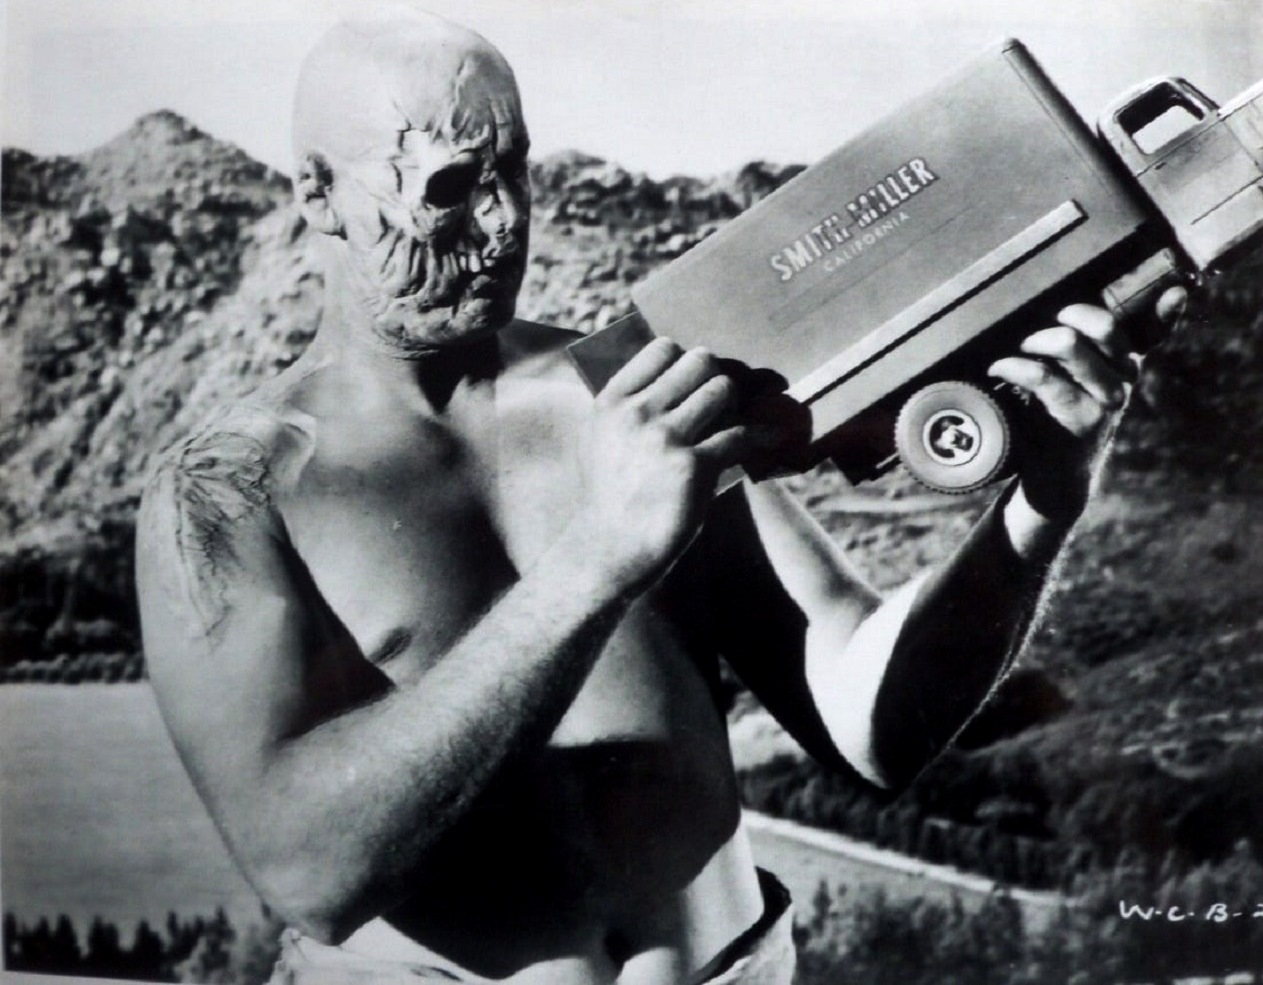 Dean Parkin as Colonel Glen Manning in War of the Colossal Beast (1958)